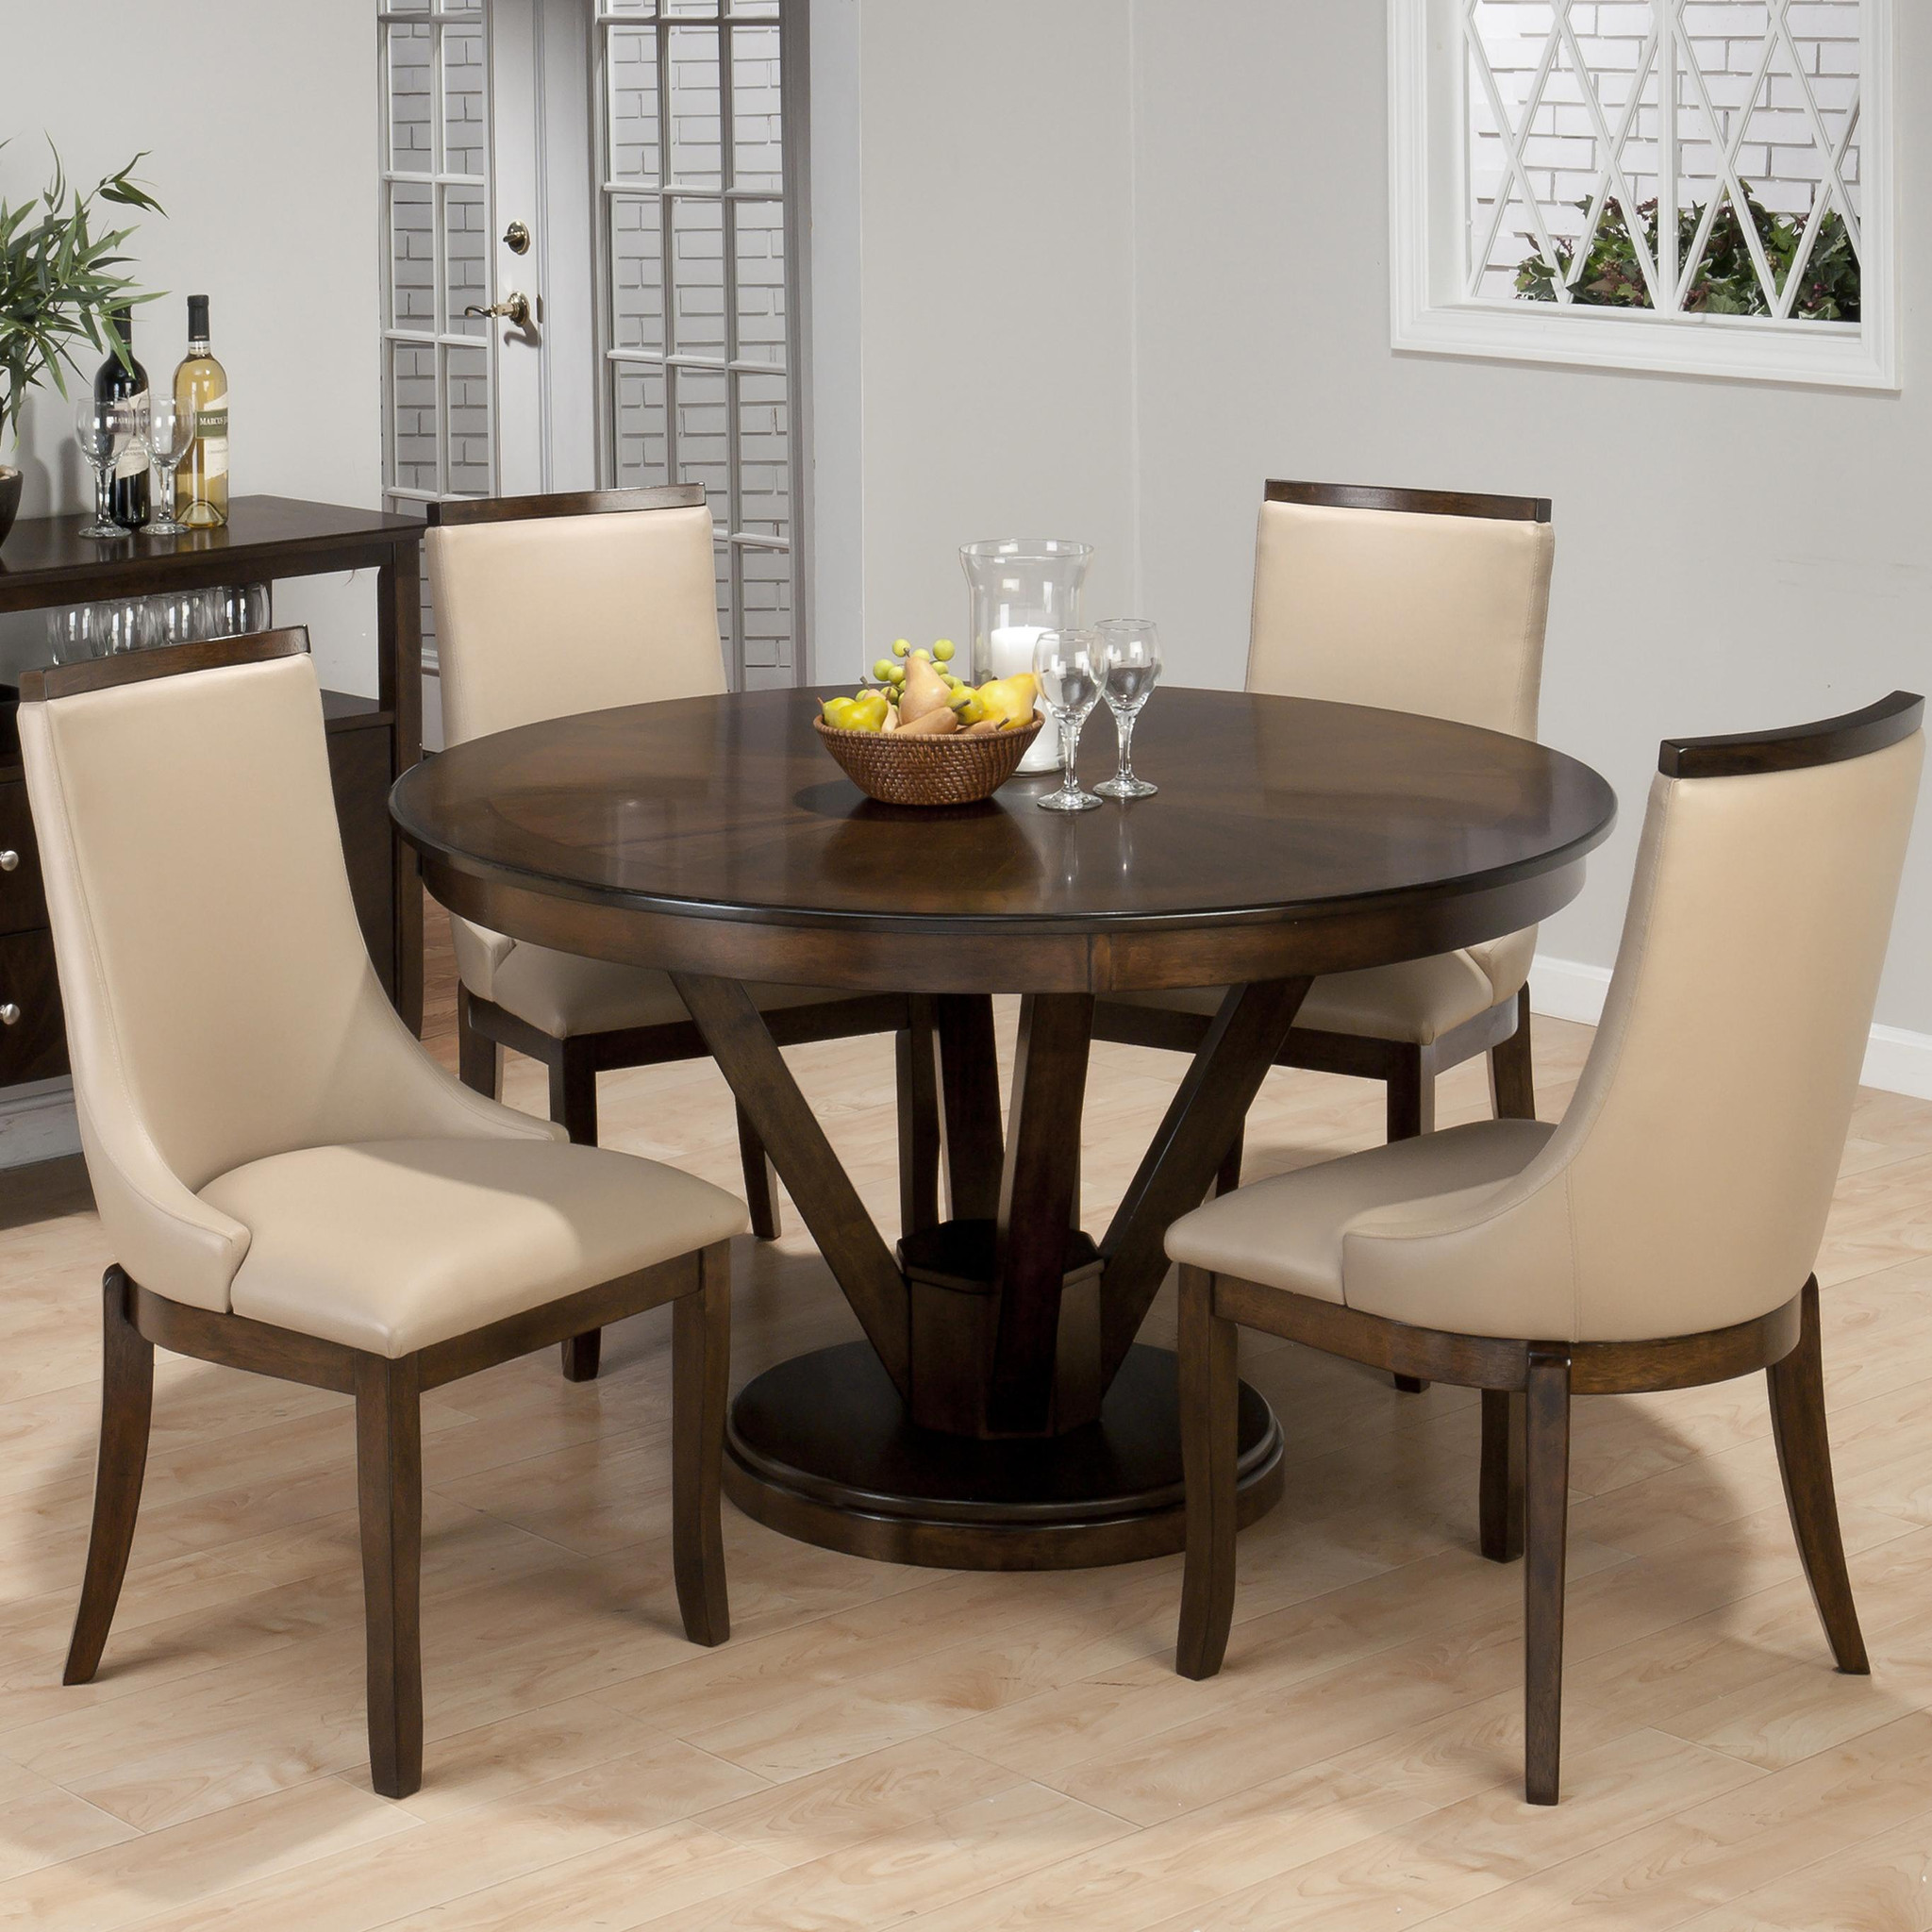 Excellent Furniture Stores Daytona Beach | Splendiferous Kalins Furniture Sarasota Ideas